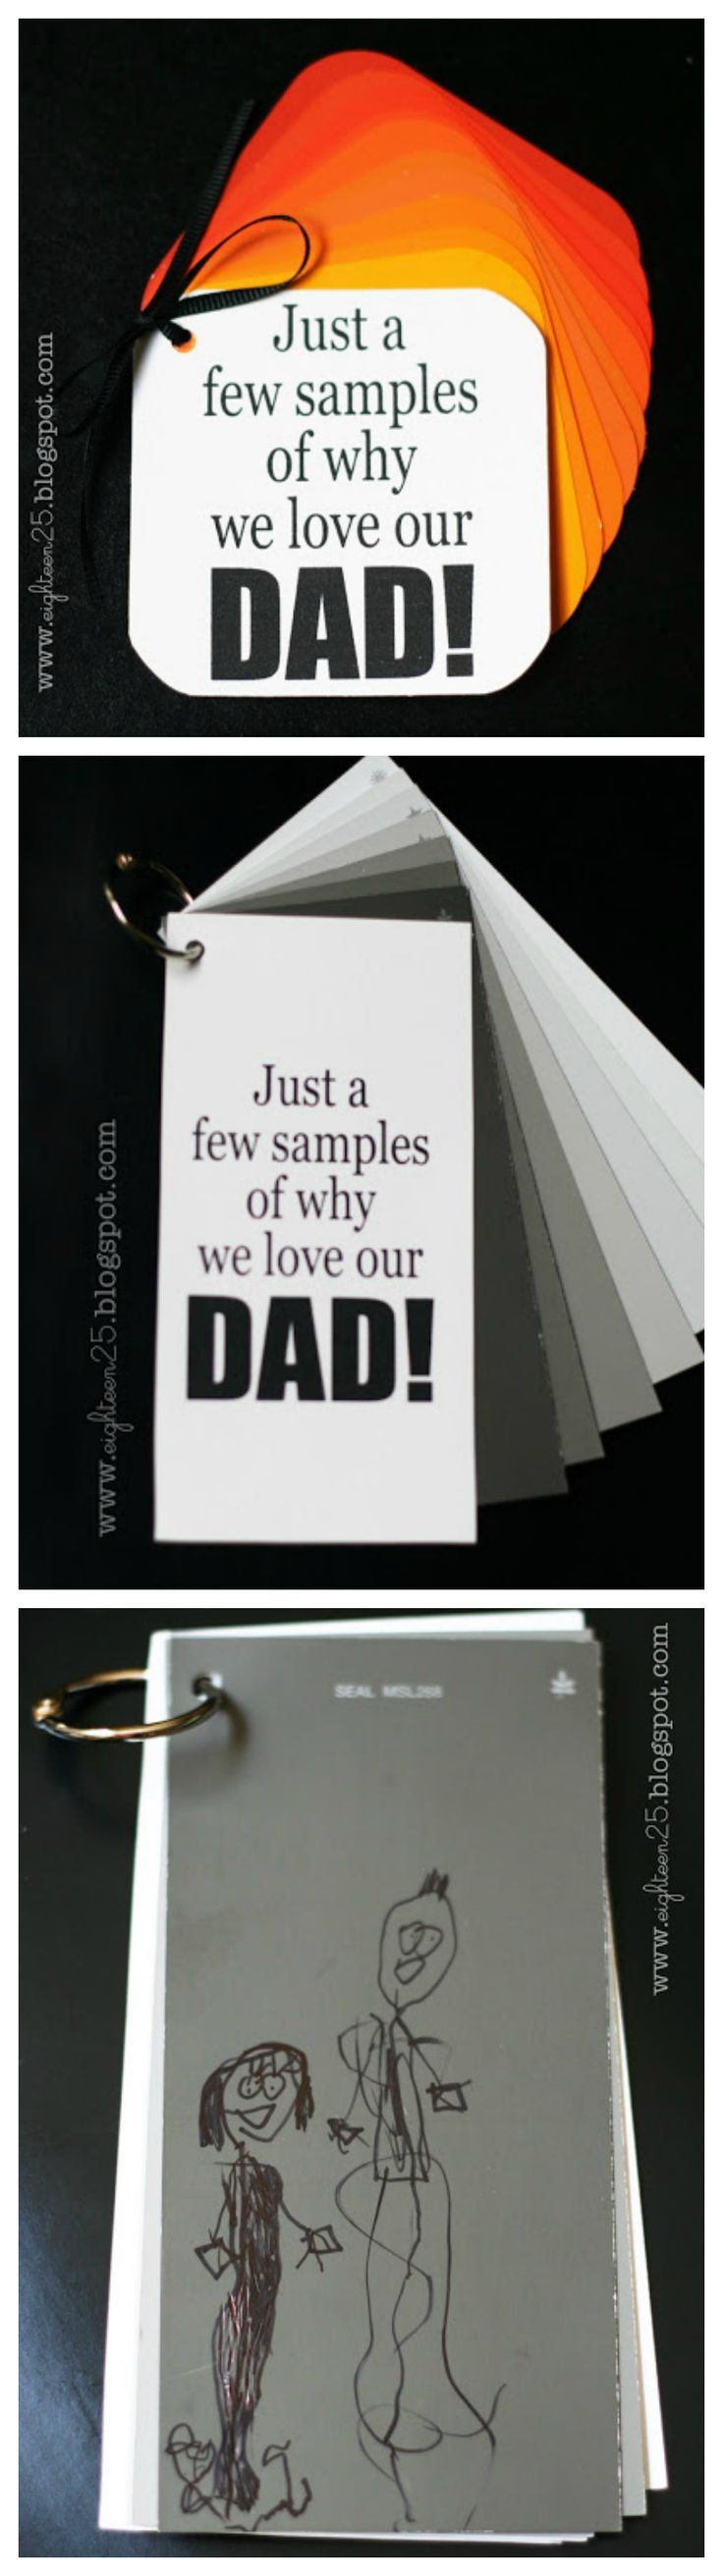 Just a few samples of why we love our Dad!   Such a sweet gift idea using paint sample cards